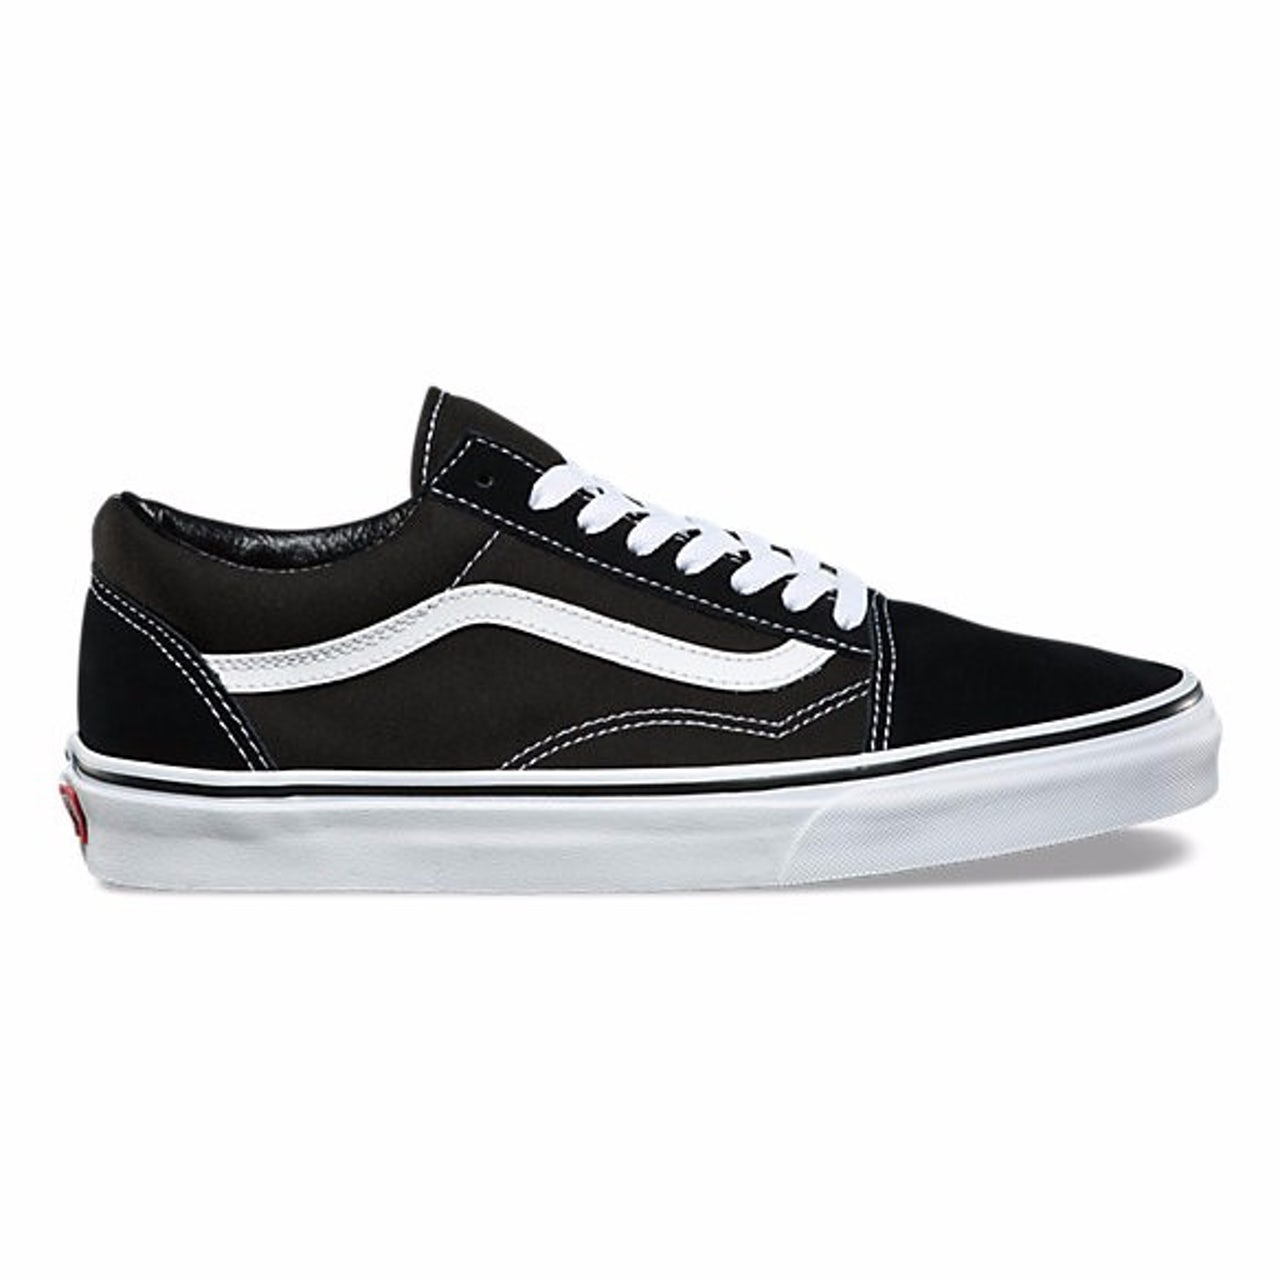 4d47f86d6509c4 Product photo of the Vans Old Skool sneaker. The shoe was originally  released in 1977